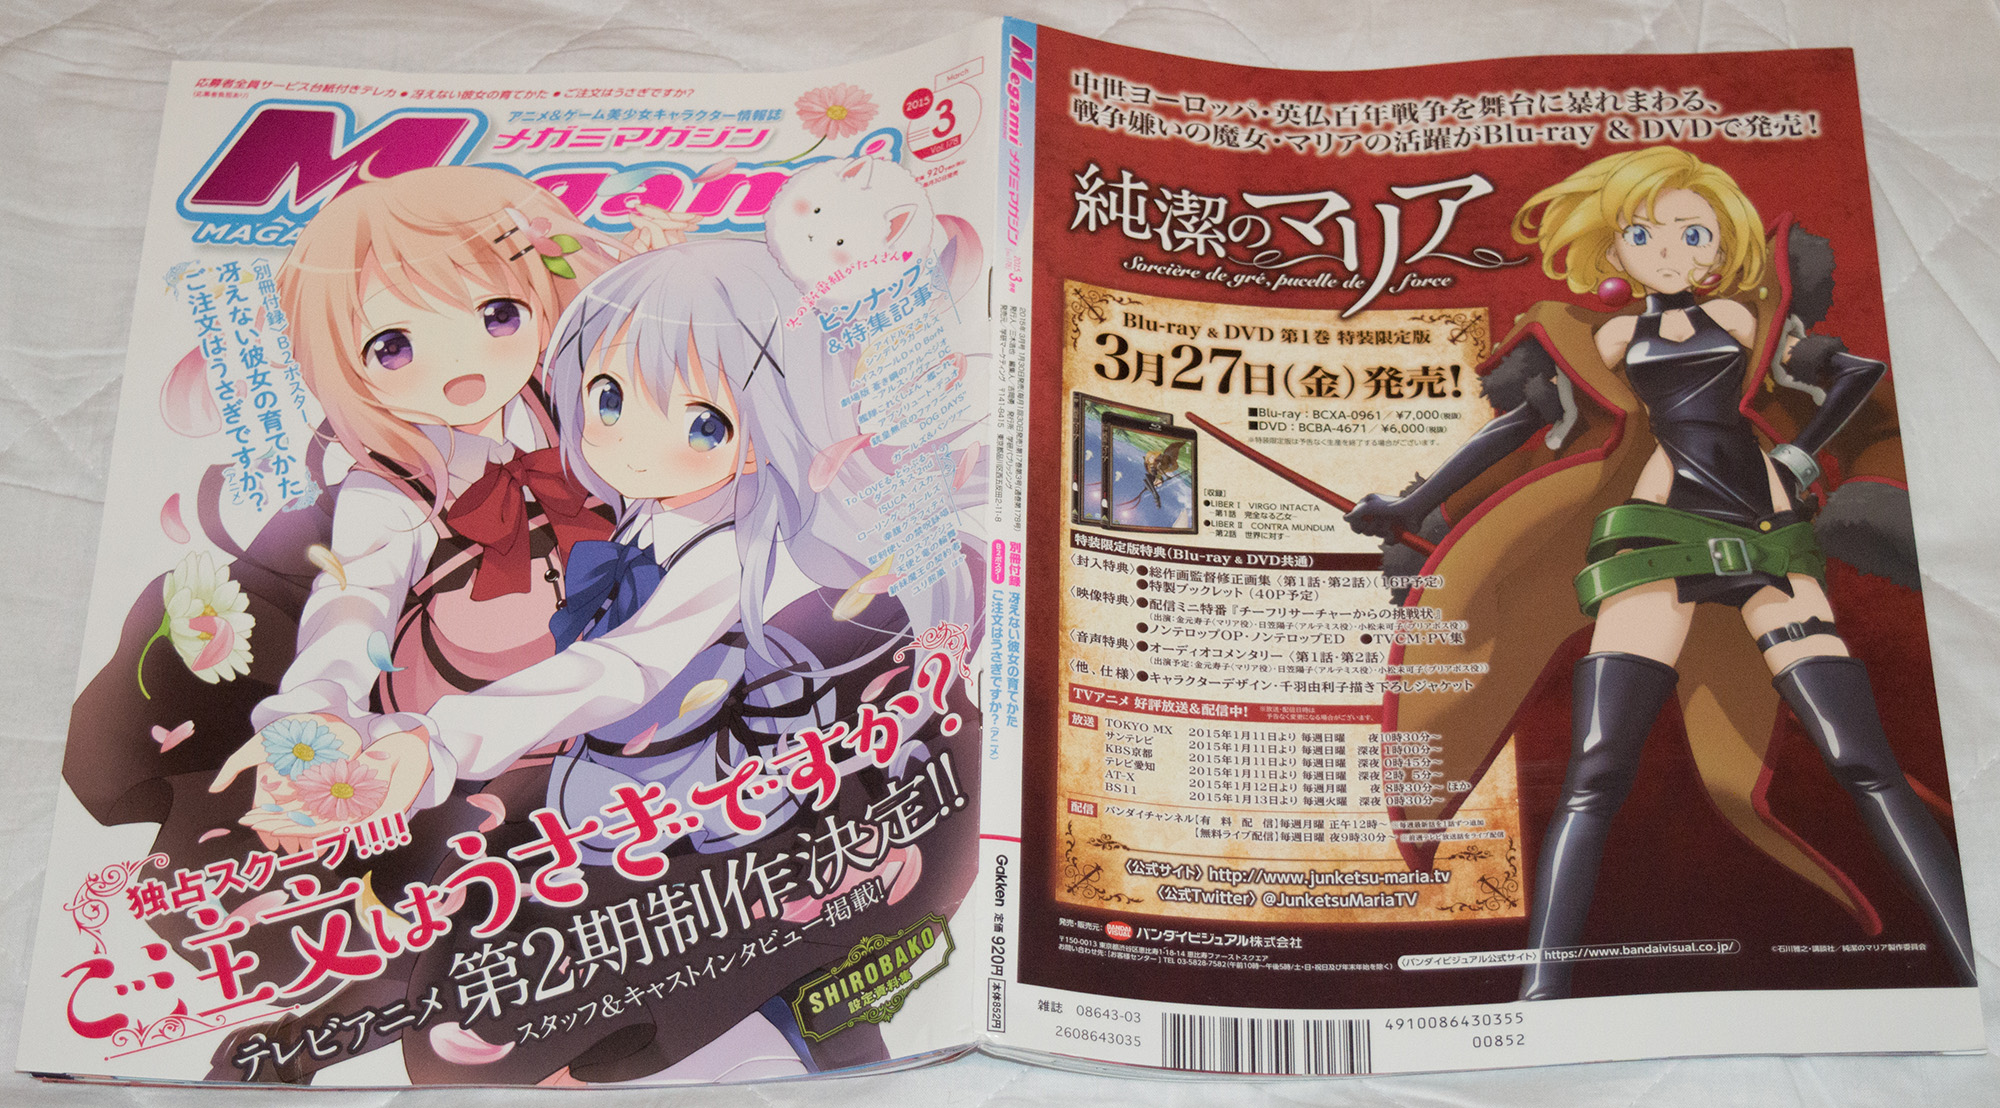 Megami MAGAZINE March 2015 anime posters Haruhichan.com Cover and Back